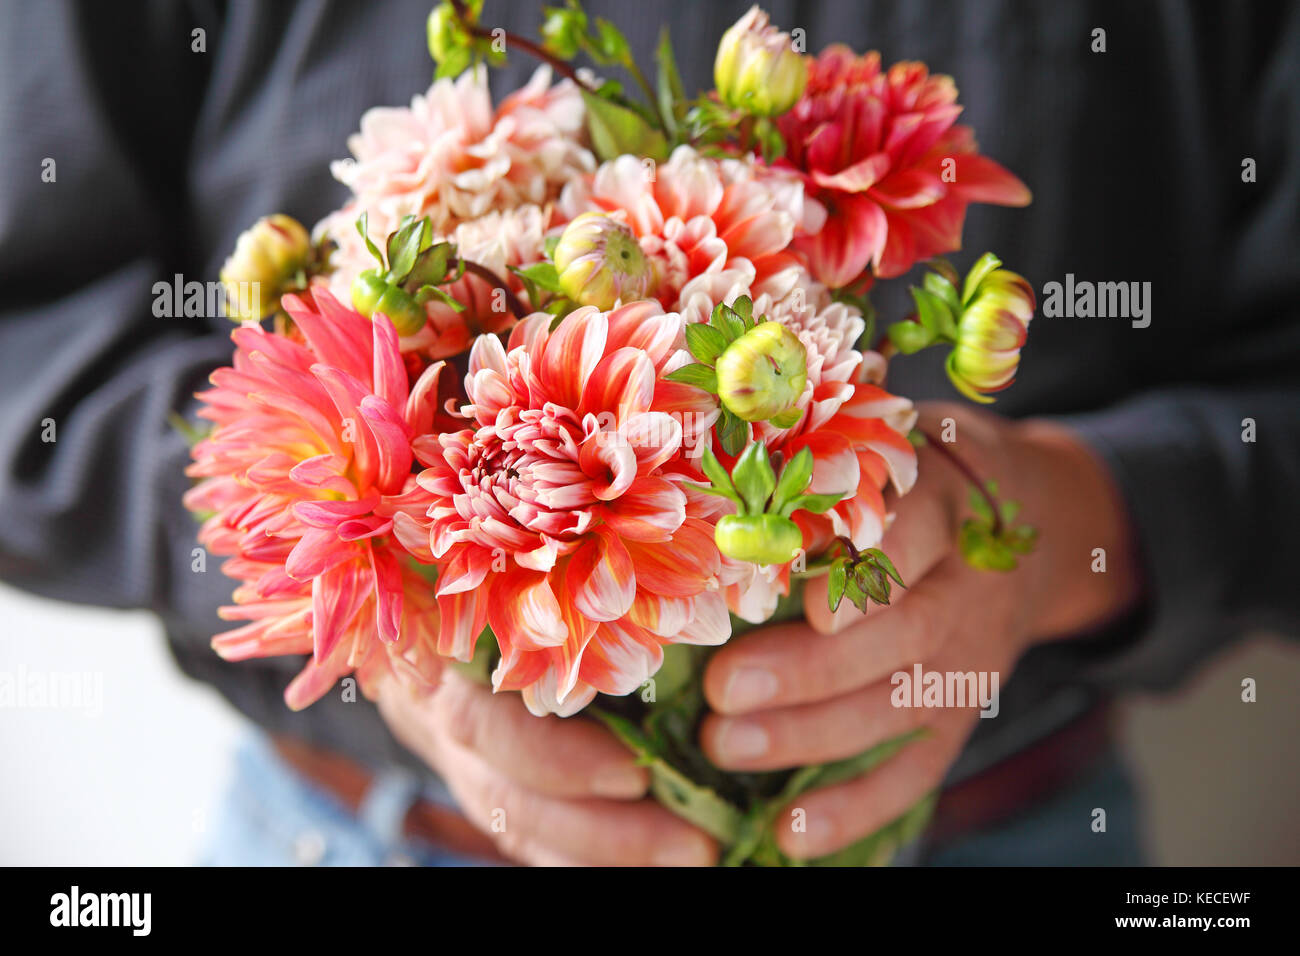 Coral Colored Flower Stock Photos & Coral Colored Flower Stock ...